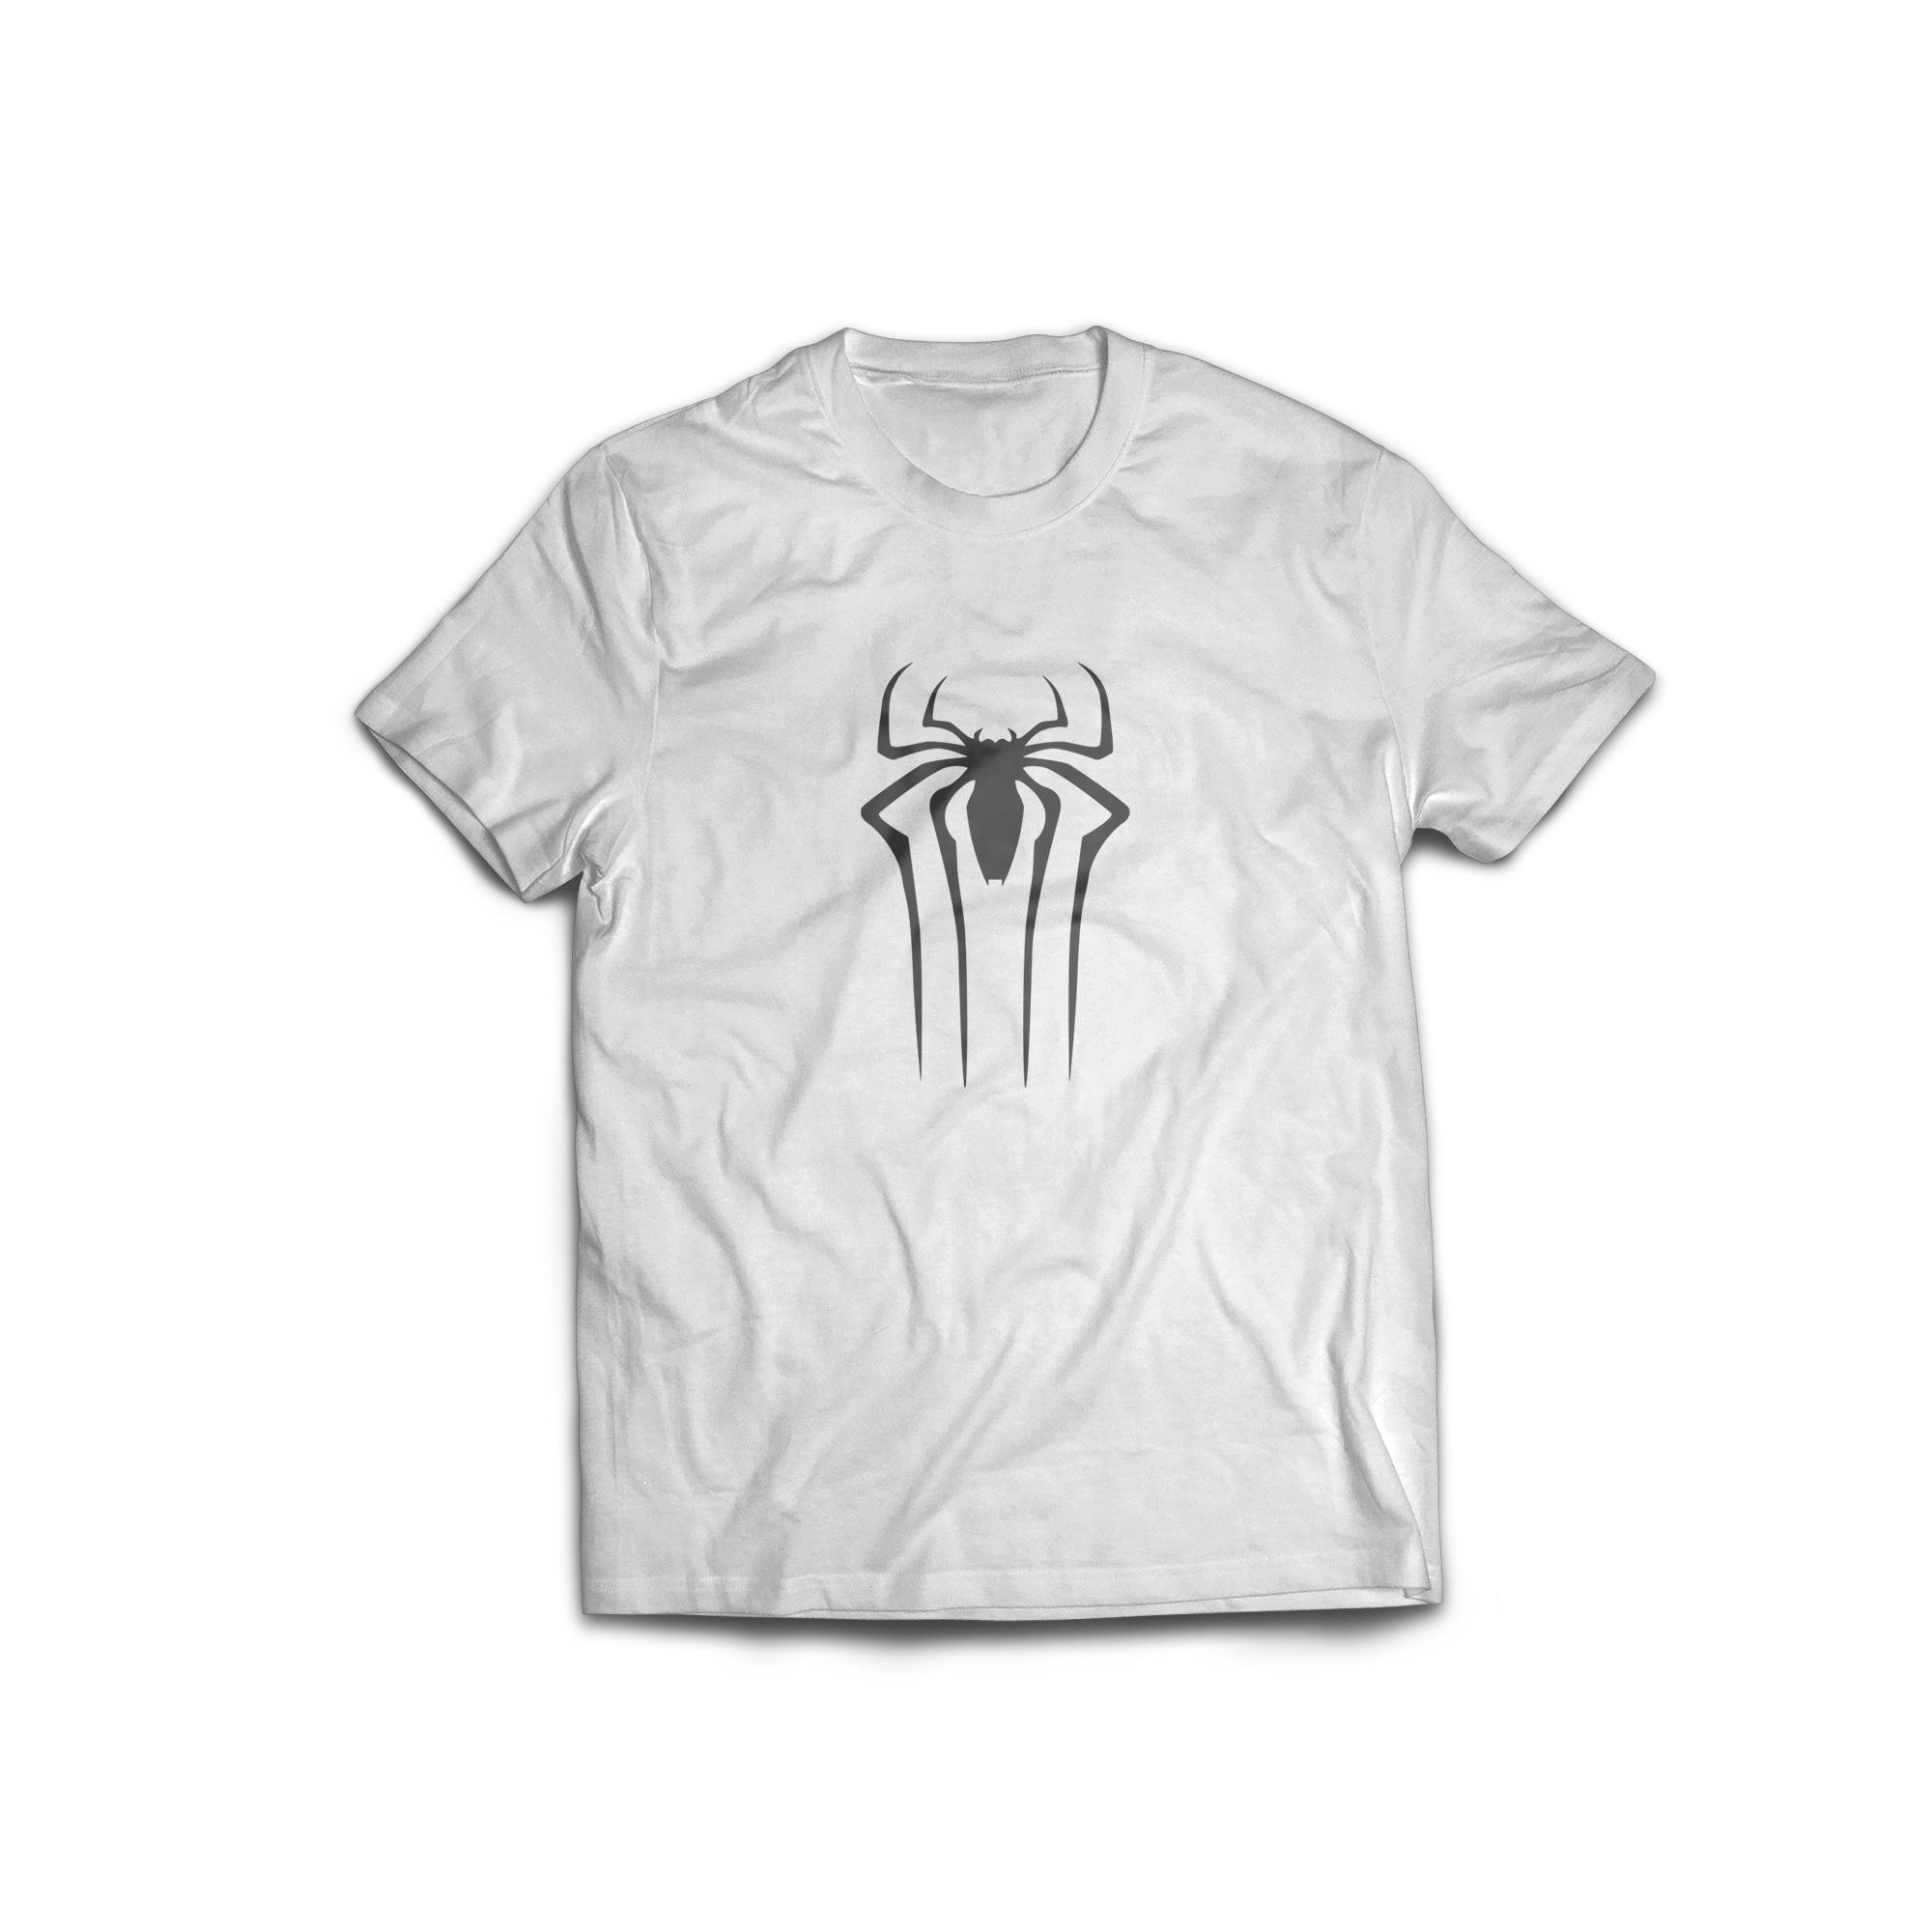 Print Your Own Design On T Shirt Buy Sell Online Best Prices In